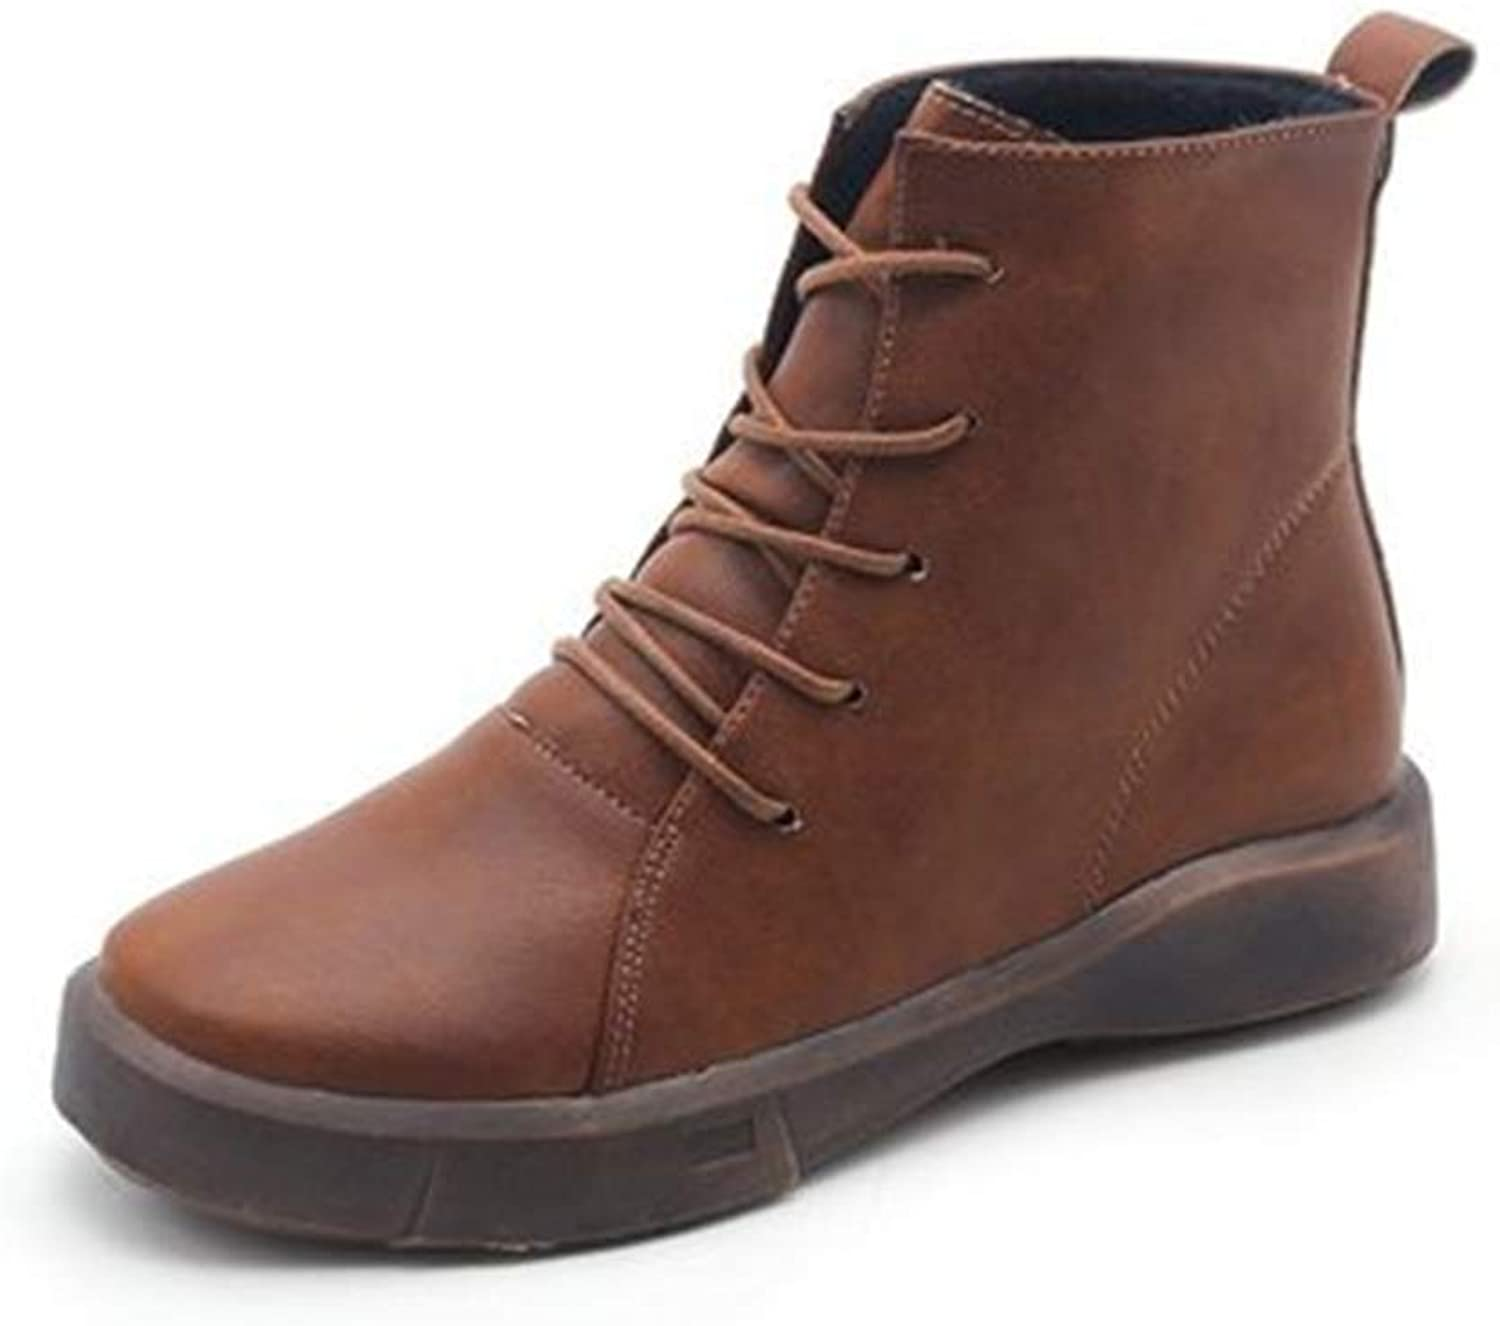 Excellent.c Thick Martin Boots Popular Women's shoes Comfortable Booties